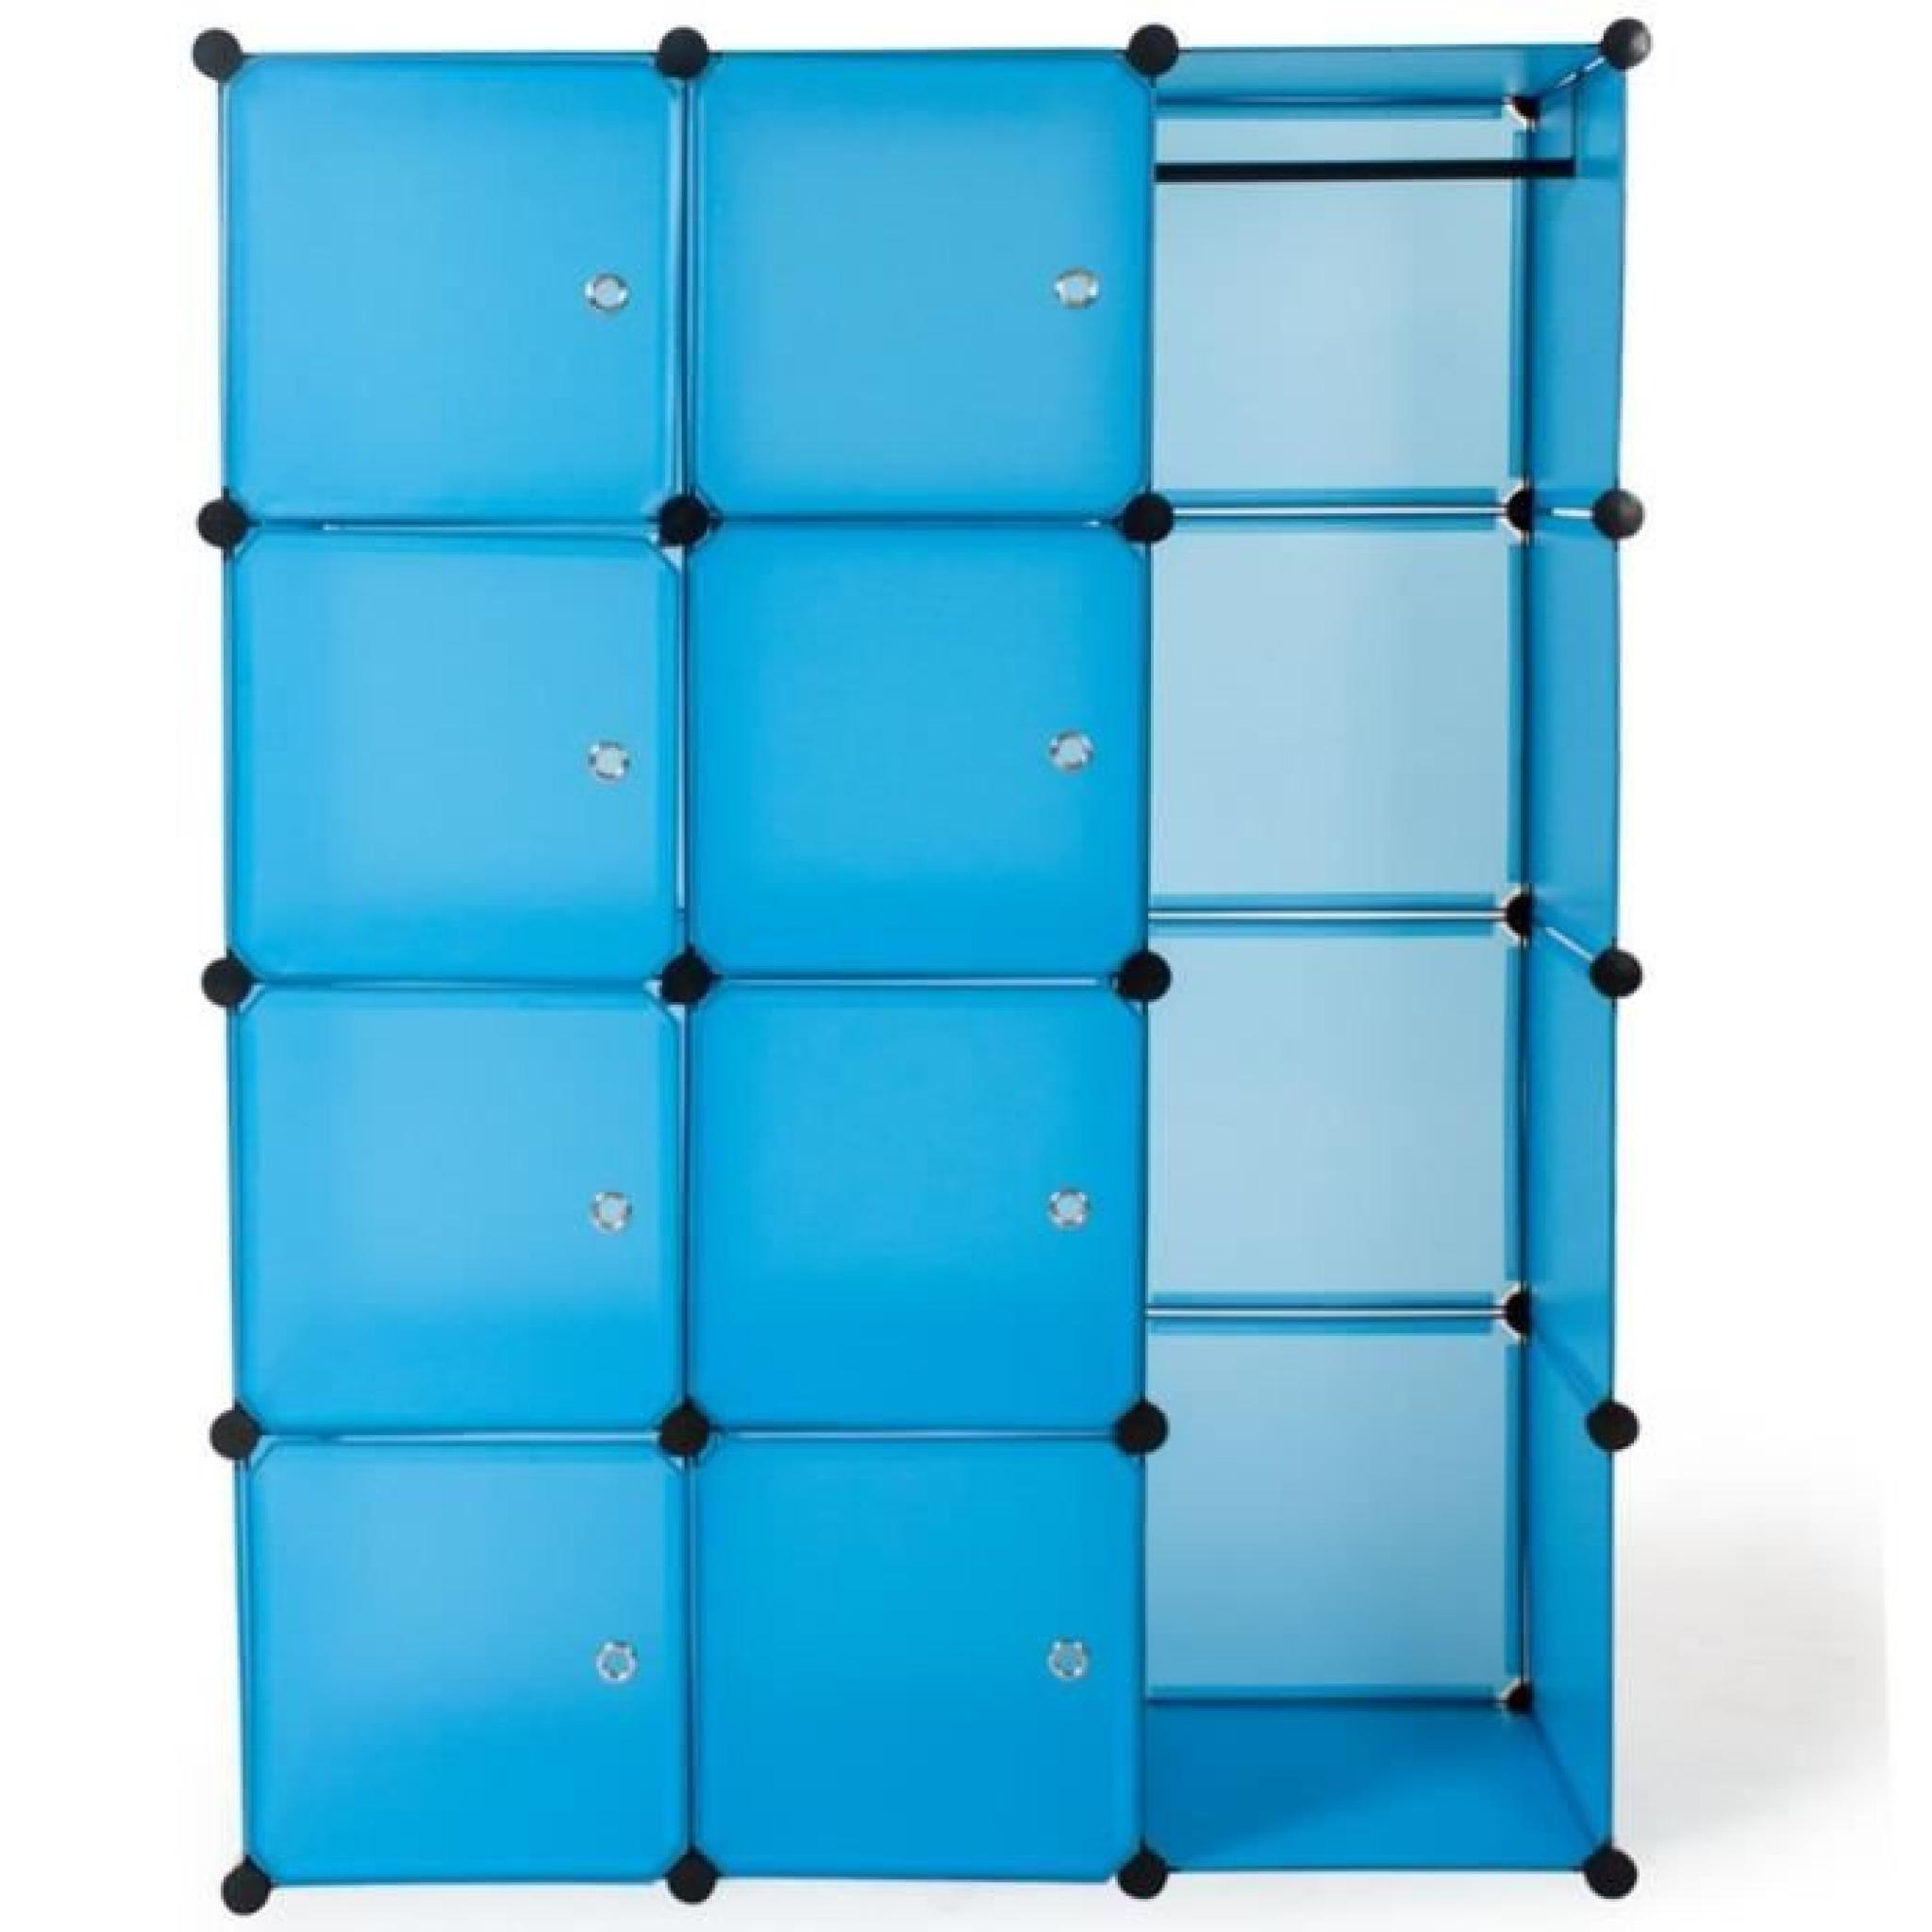 armoire penderie rangement dressing bleu achat vente. Black Bedroom Furniture Sets. Home Design Ideas